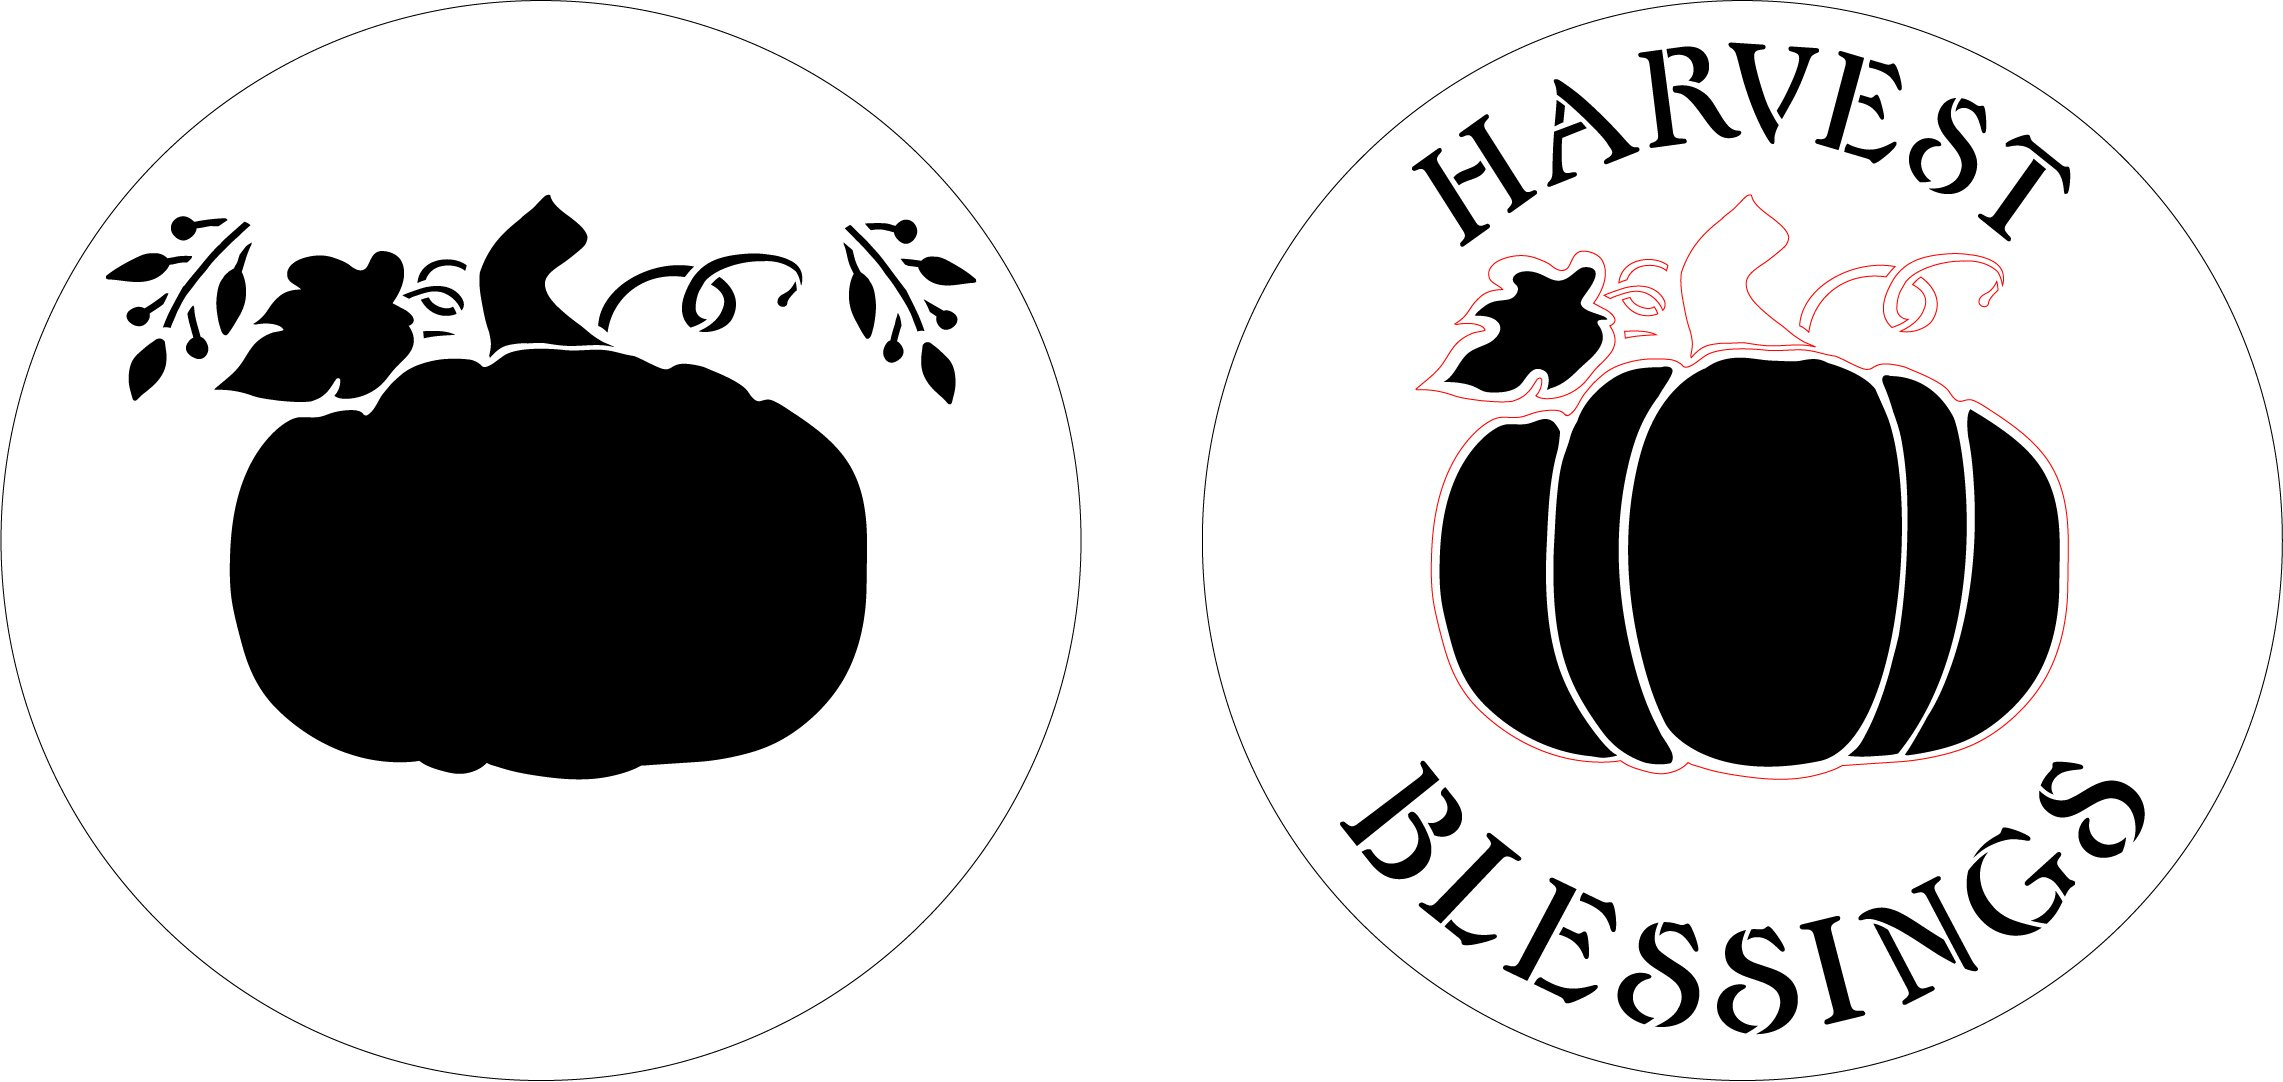 Harvest Blessings 2-Part Round Stencil by StudioR12 | DIY Autumn Pumpkin Home Decor Craft & Paint Fall Wood Sign Reusable Mylar Template | Select Size